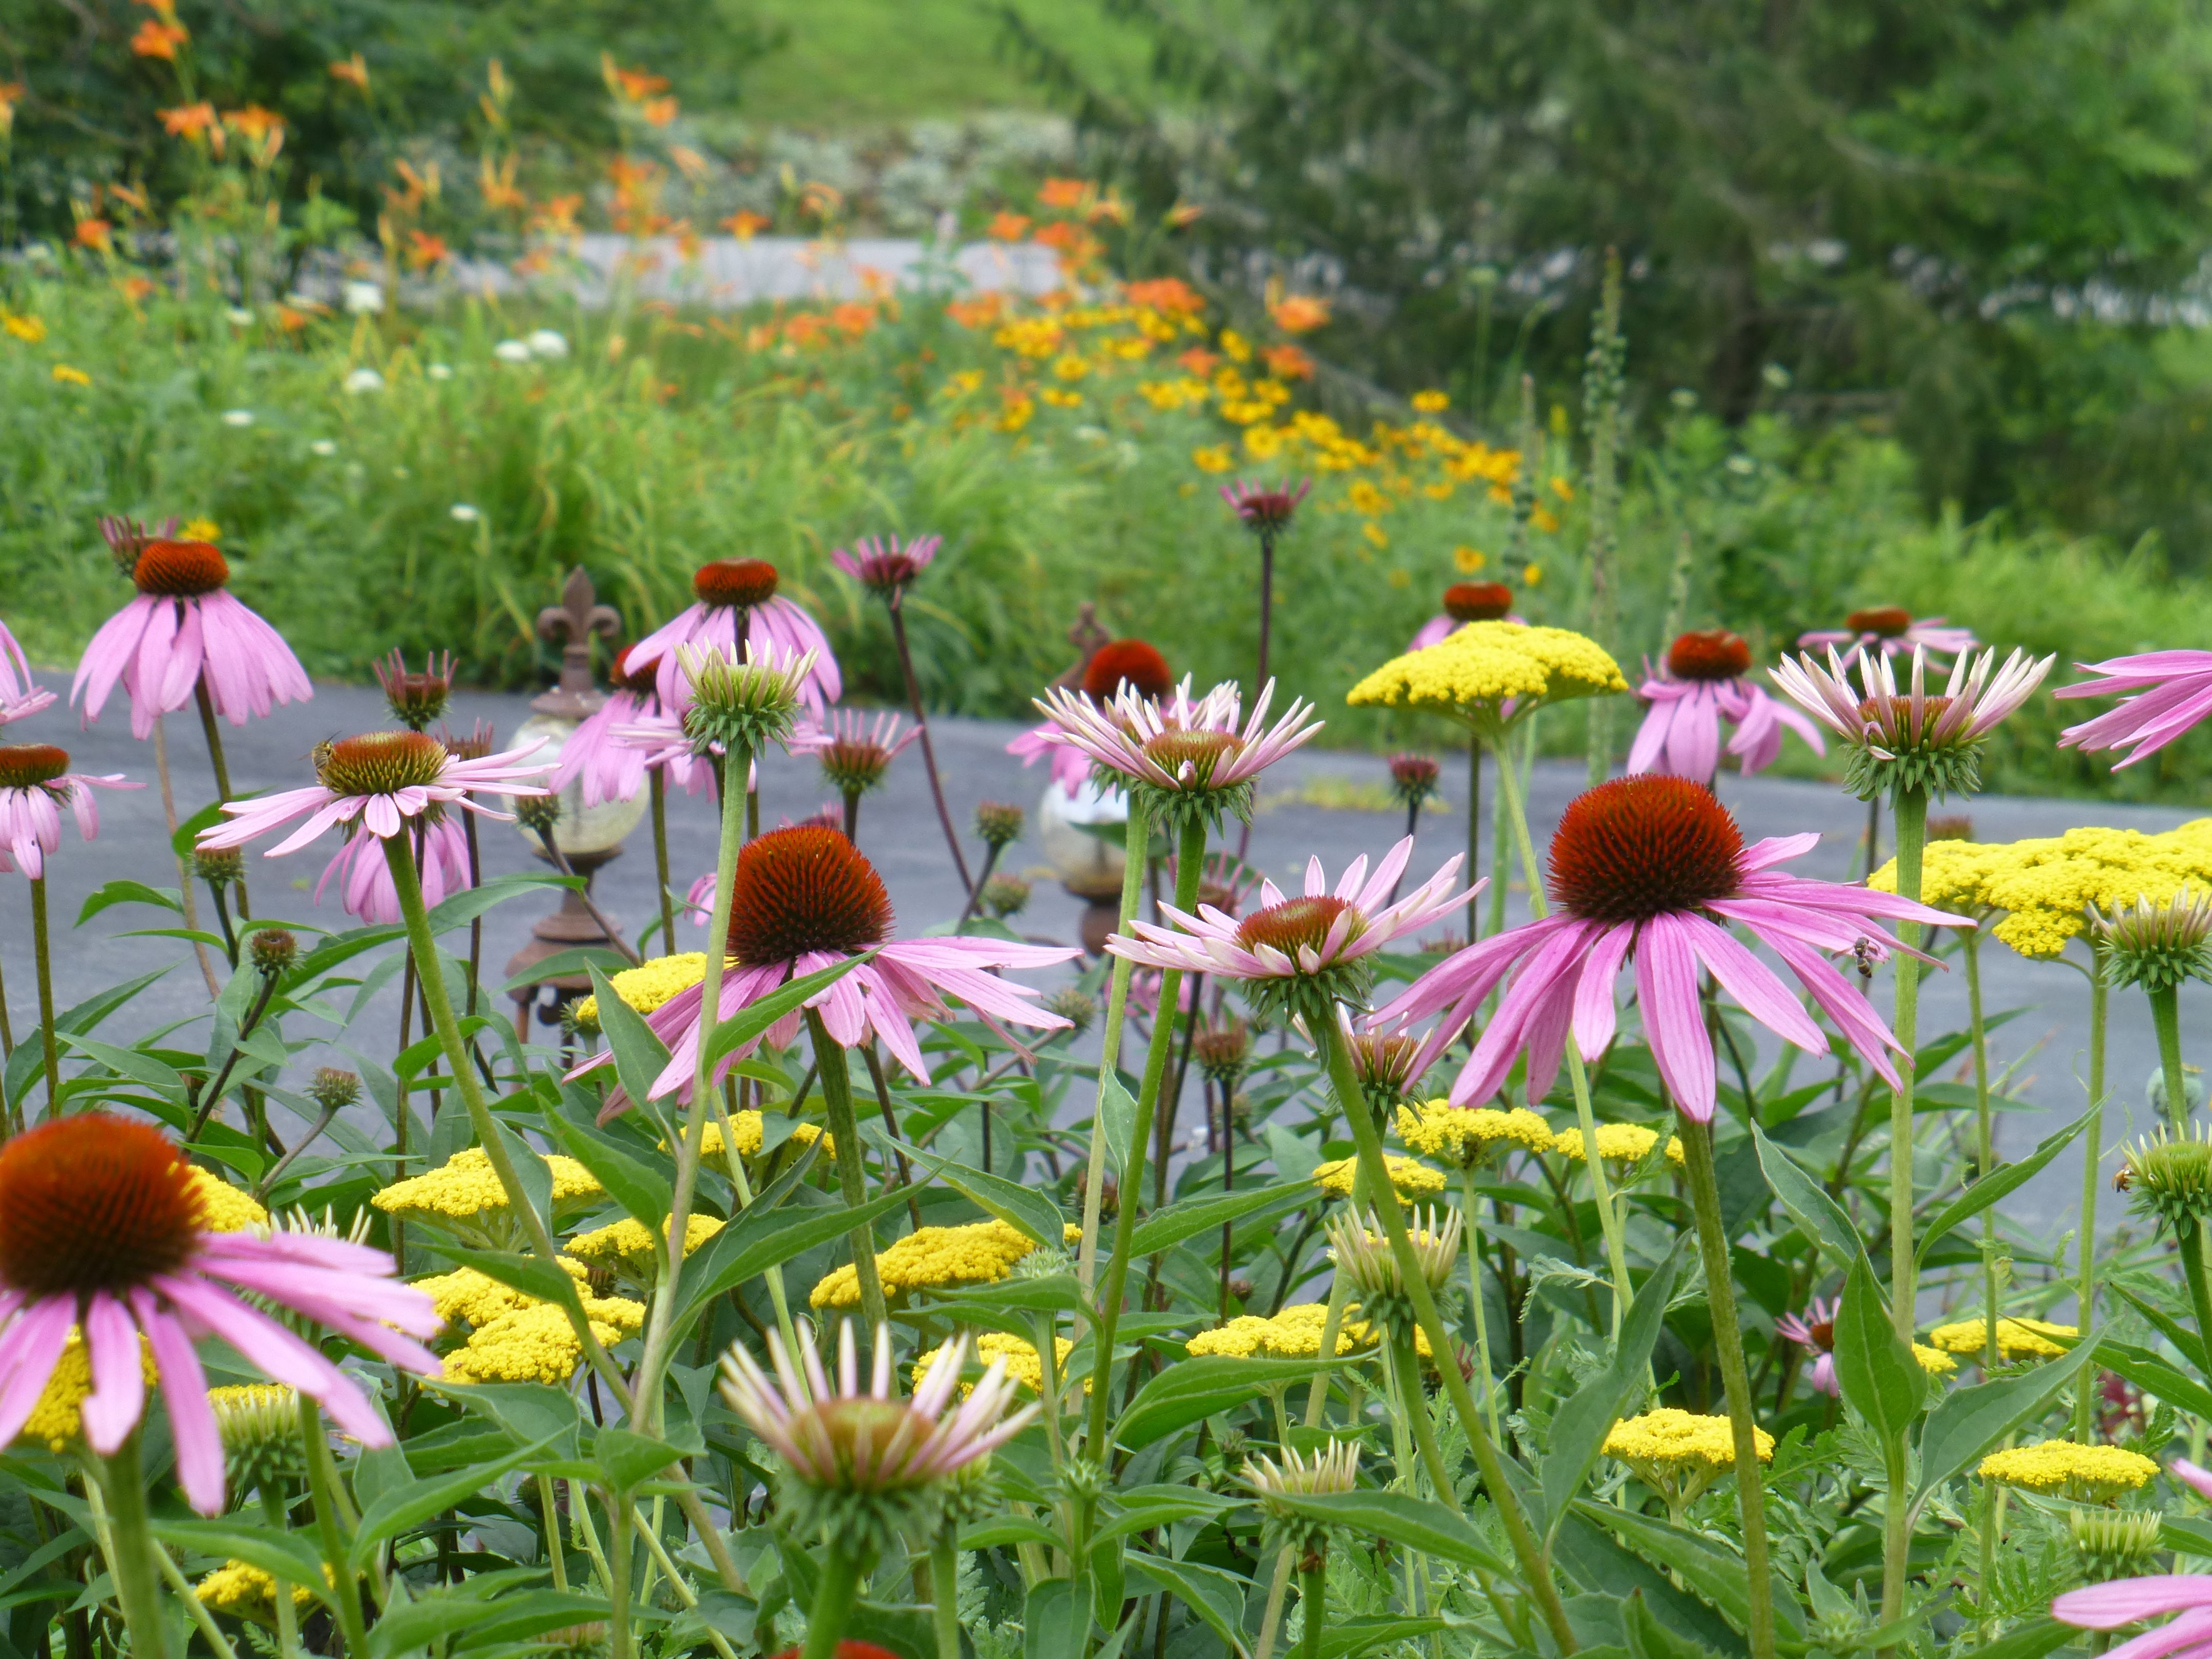 In The Foreground Is Purple Coneflower With Yellow Fernleaf Yarrow Country Gardening Flower Beds Plants